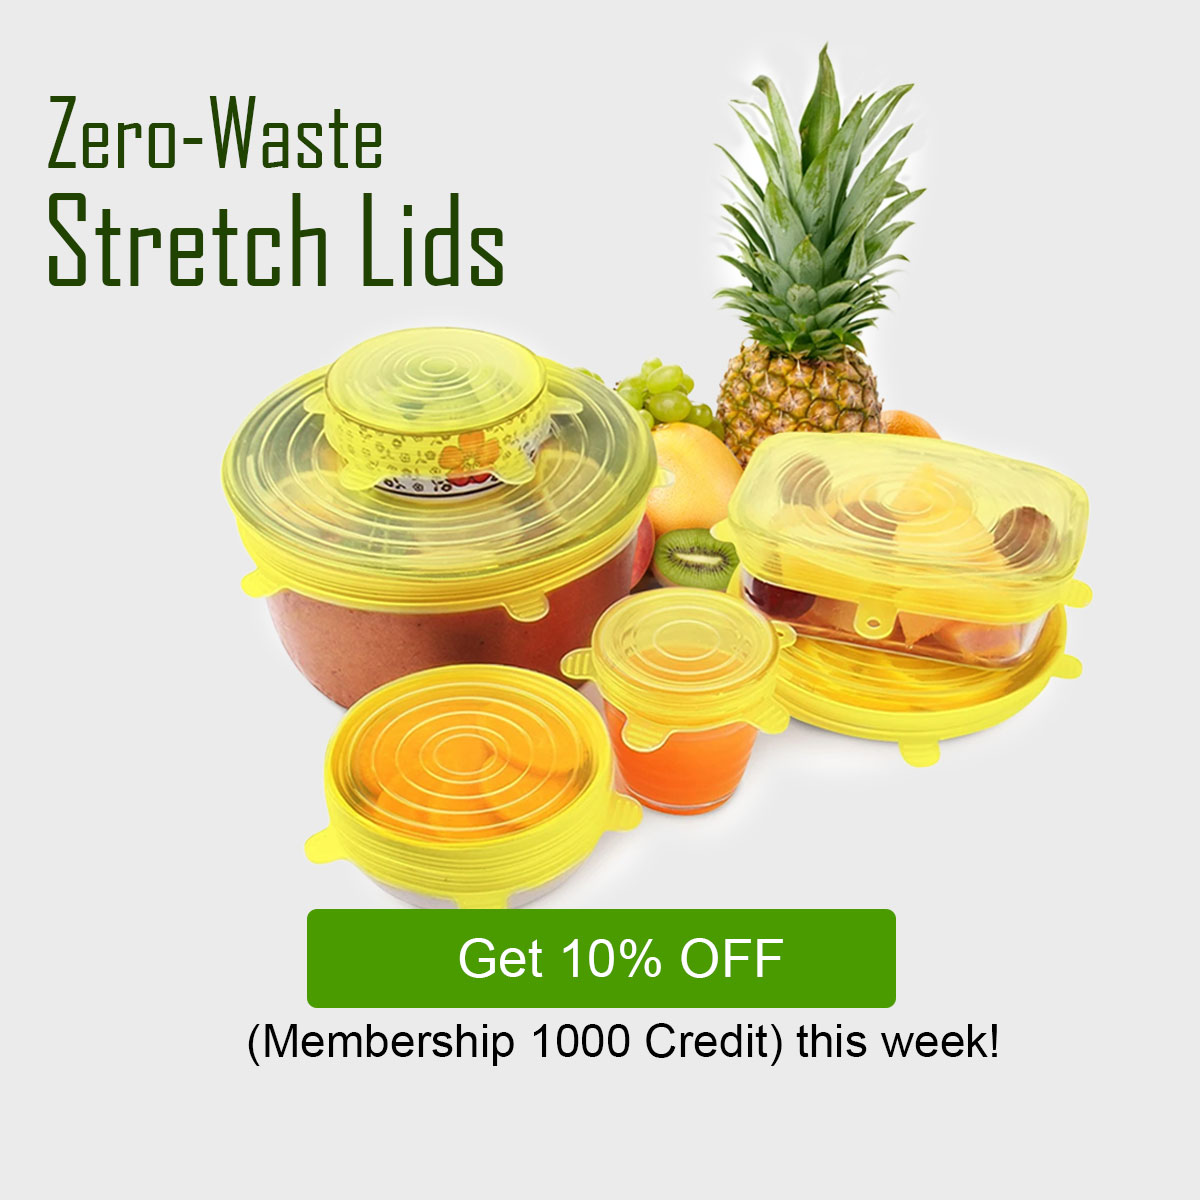 Stretch Zero-Waste Reusable Food and Container Lids (6 Piece Set)